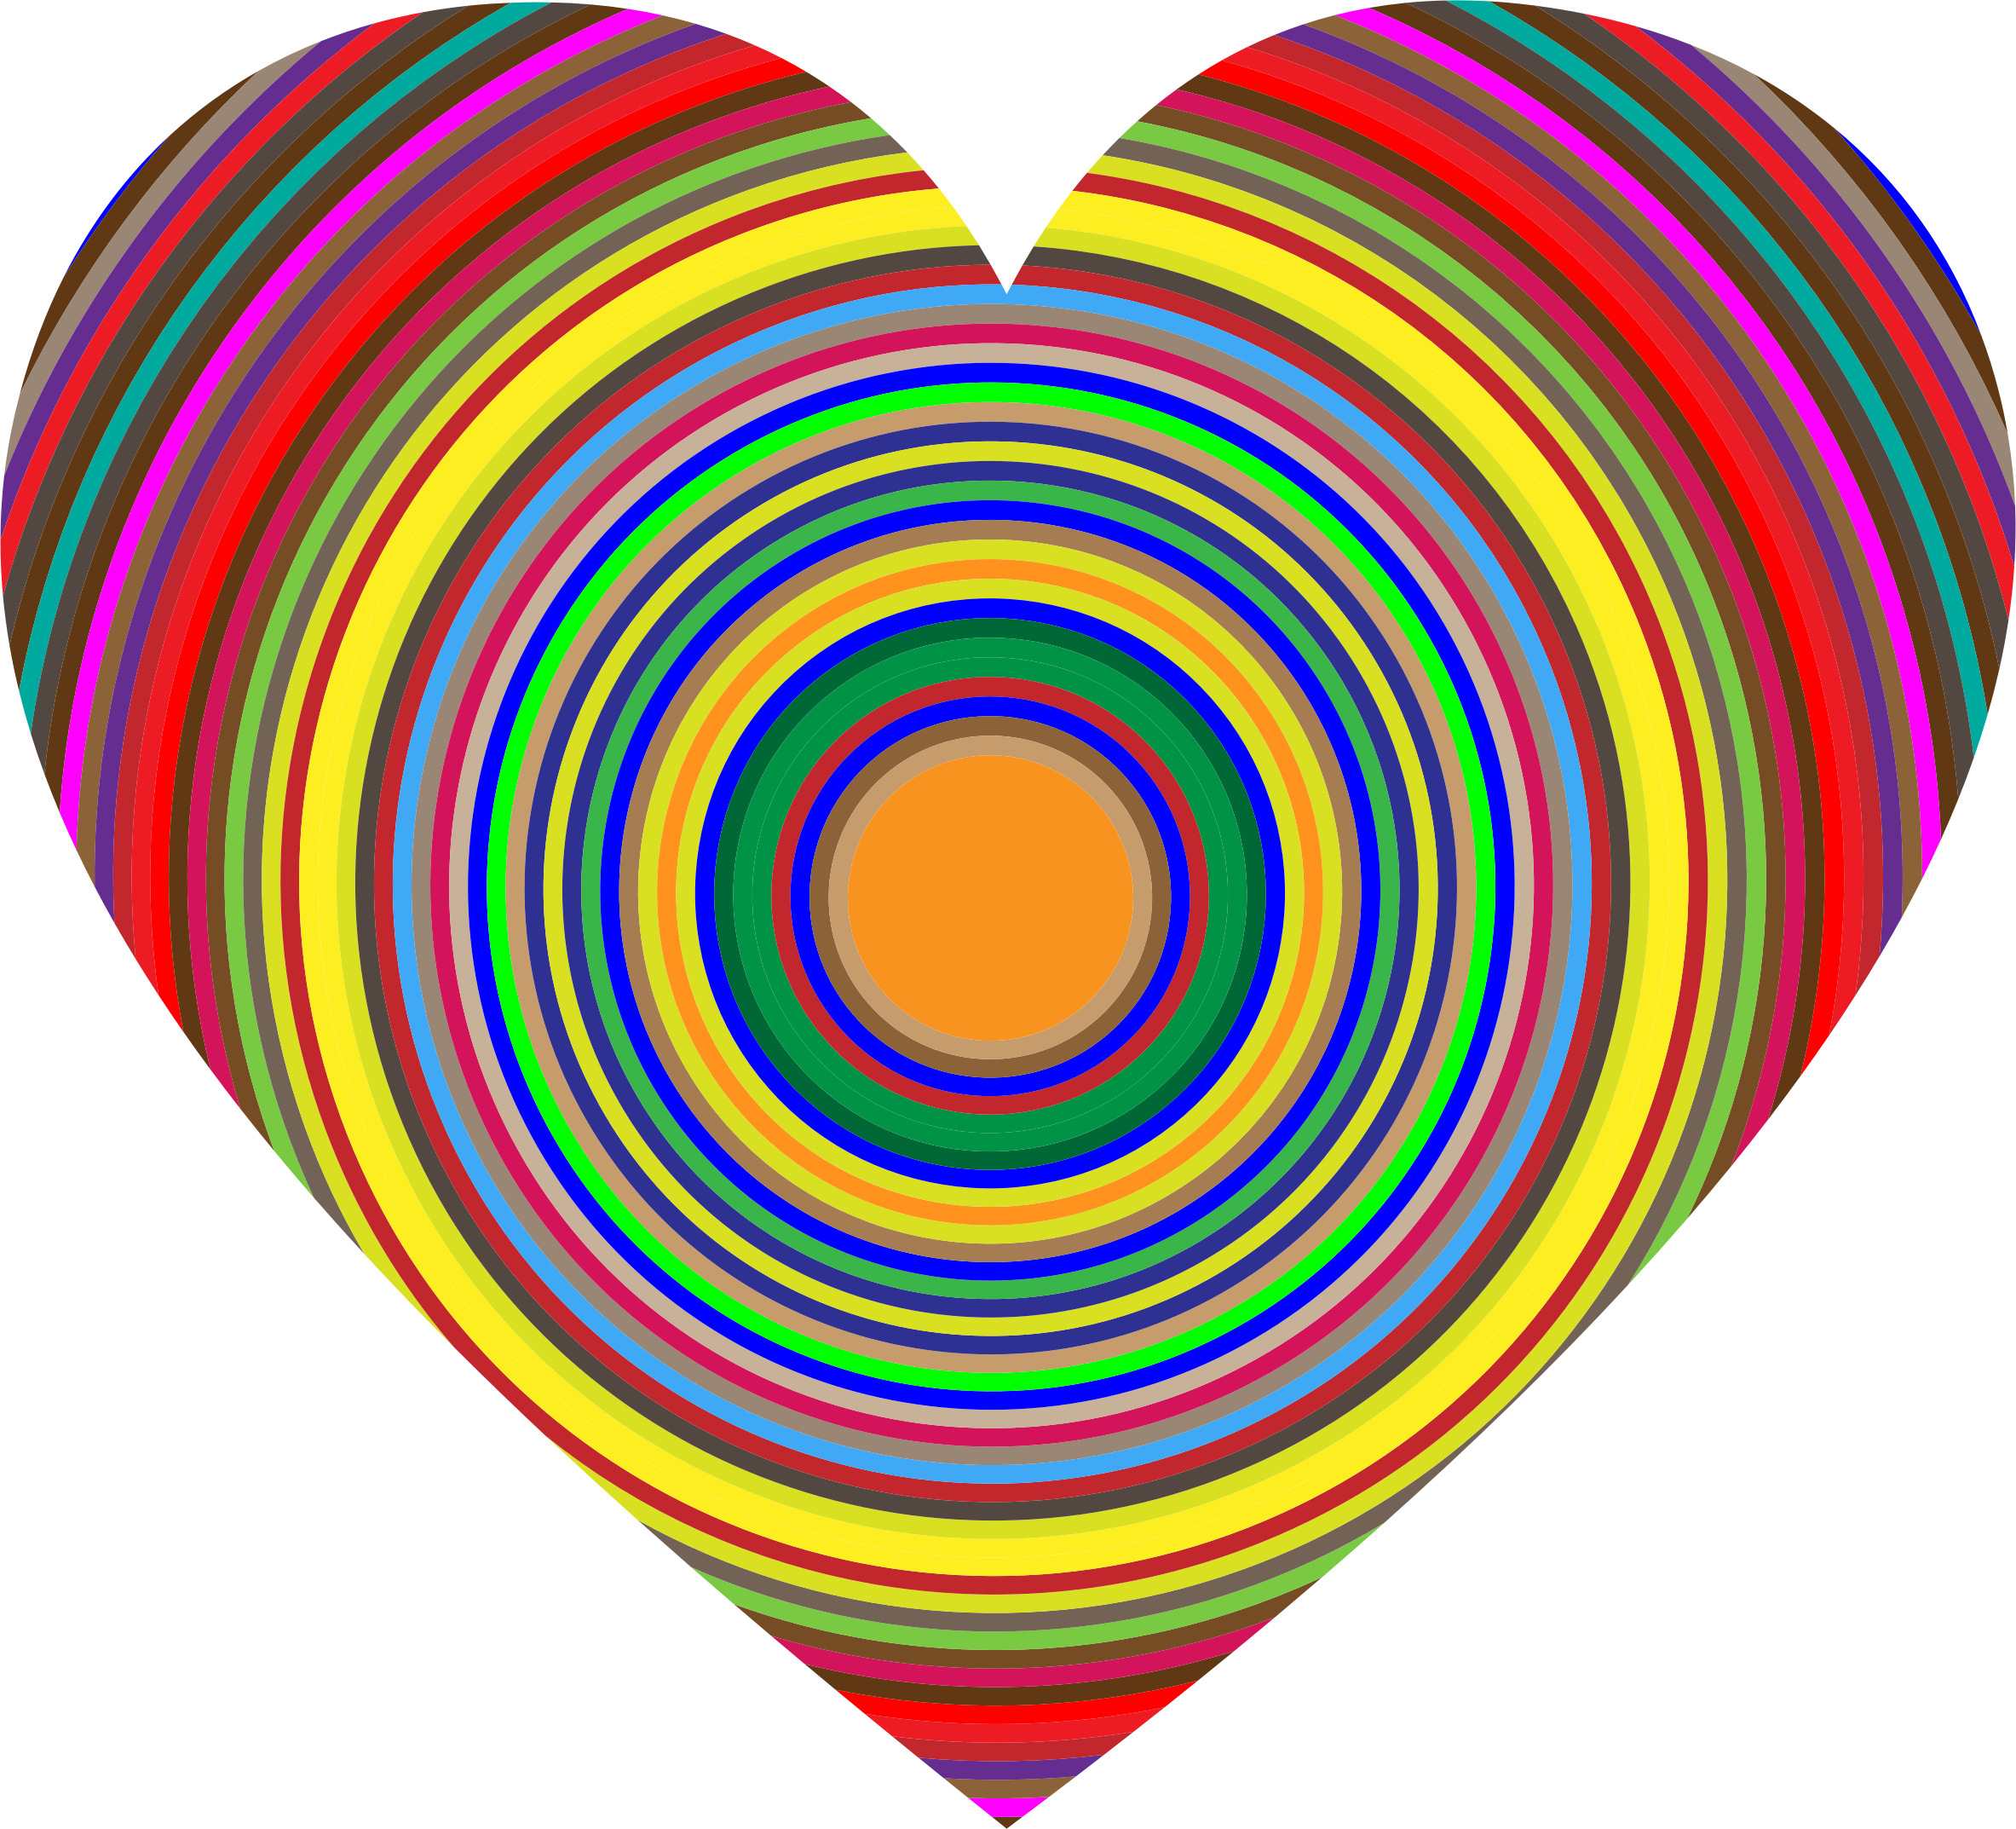 Concentric Heart by GDJ